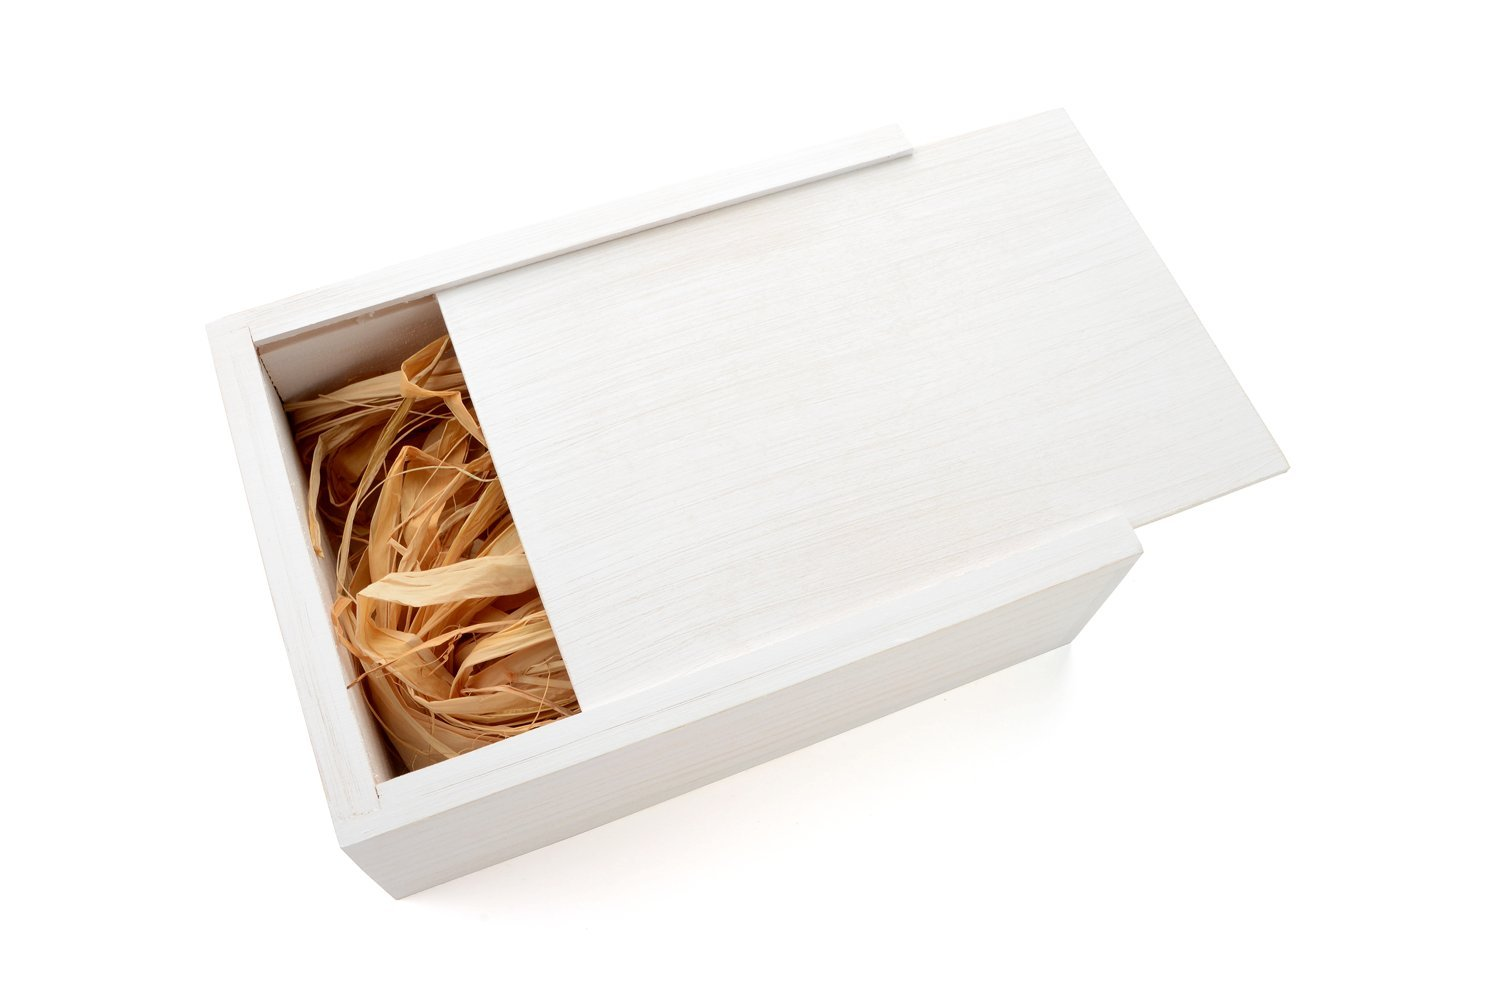 Wedding White 4 x 6 Picture Box - Holds up to 125 4 x 6 Photos - Filled with Raffia Grass